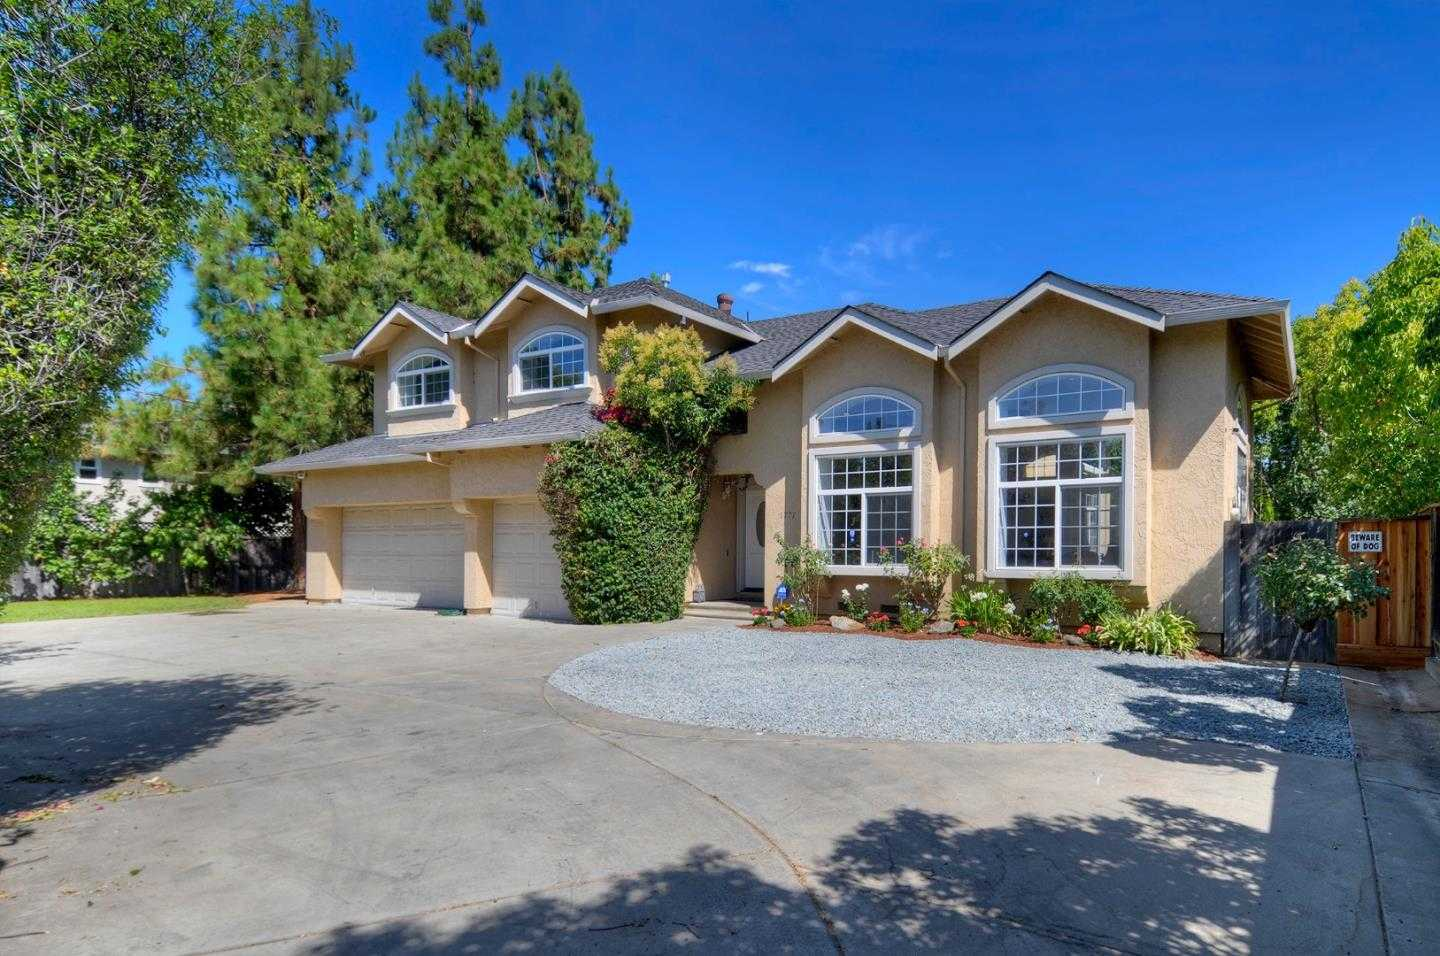 $2,099,000 - 5Br/3Ba -  for Sale in Campbell